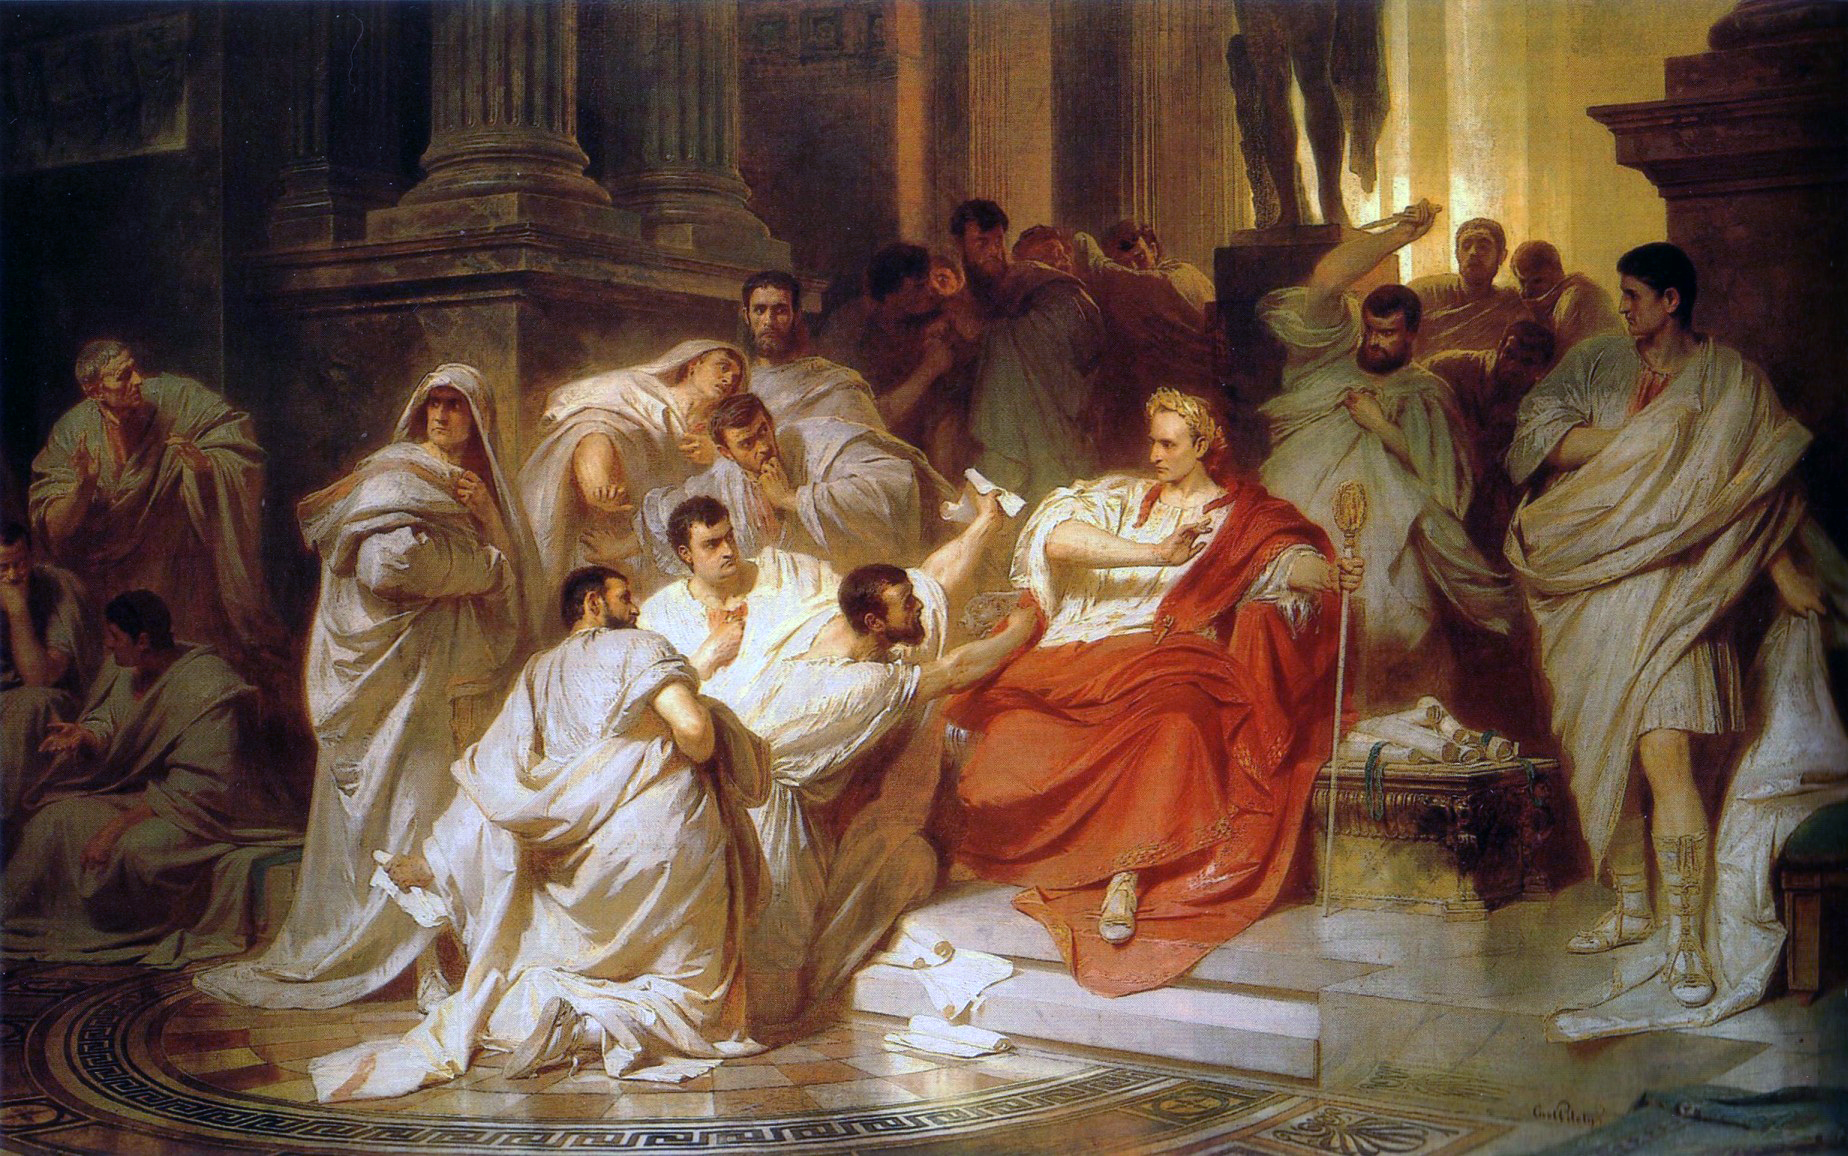 https://upload.wikimedia.org/wikipedia/commons/2/23/Karl_Theodor_von_Piloty_Murder_of_Caesar_1865.jpg